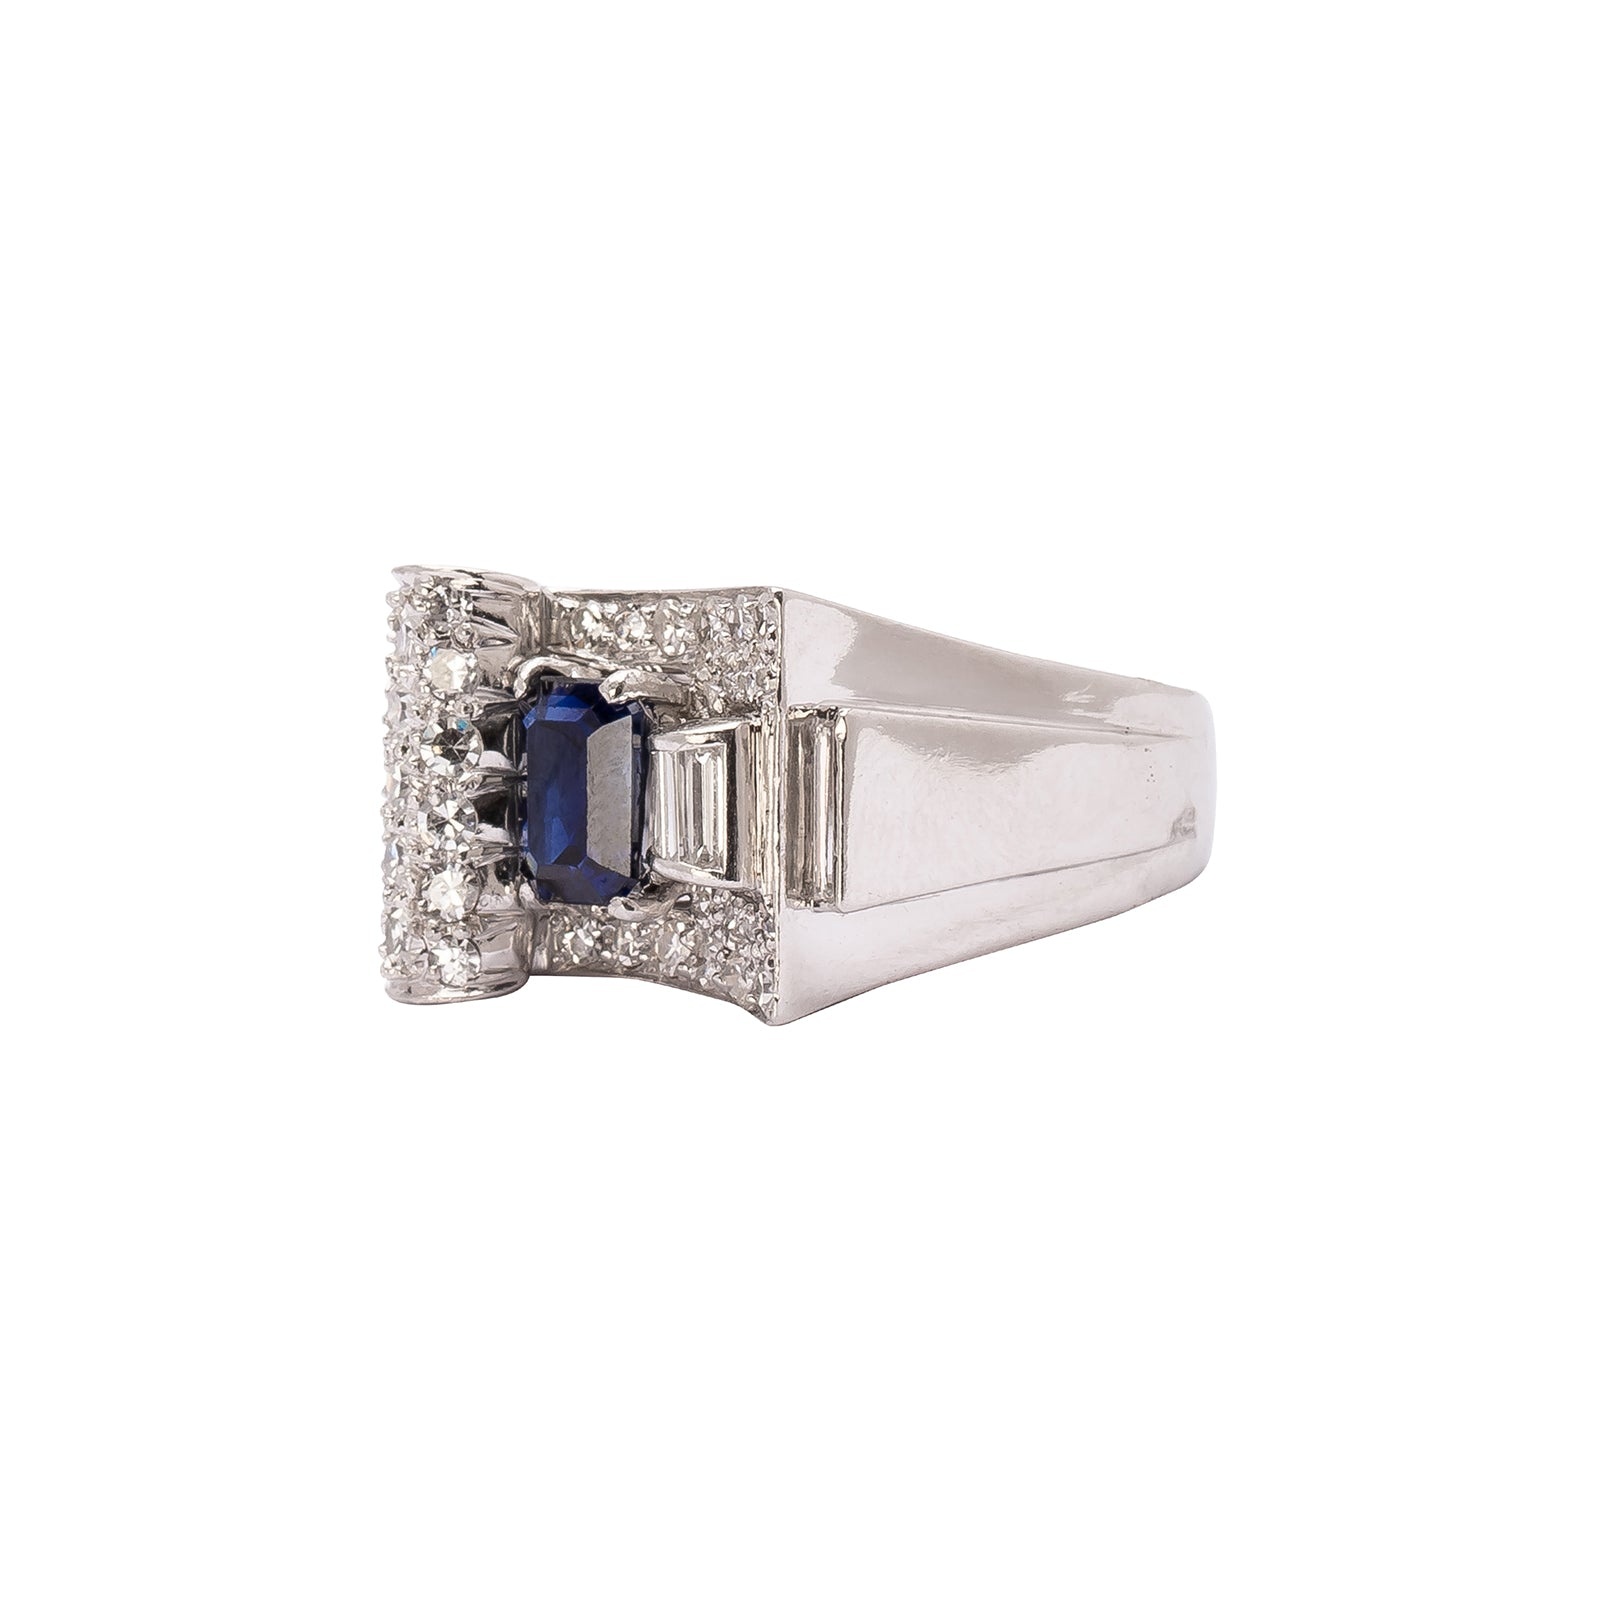 Antique & Vintage Jewelry Sapphire & Diamond Sculpted Ring - Rings - Broken English Jewelry